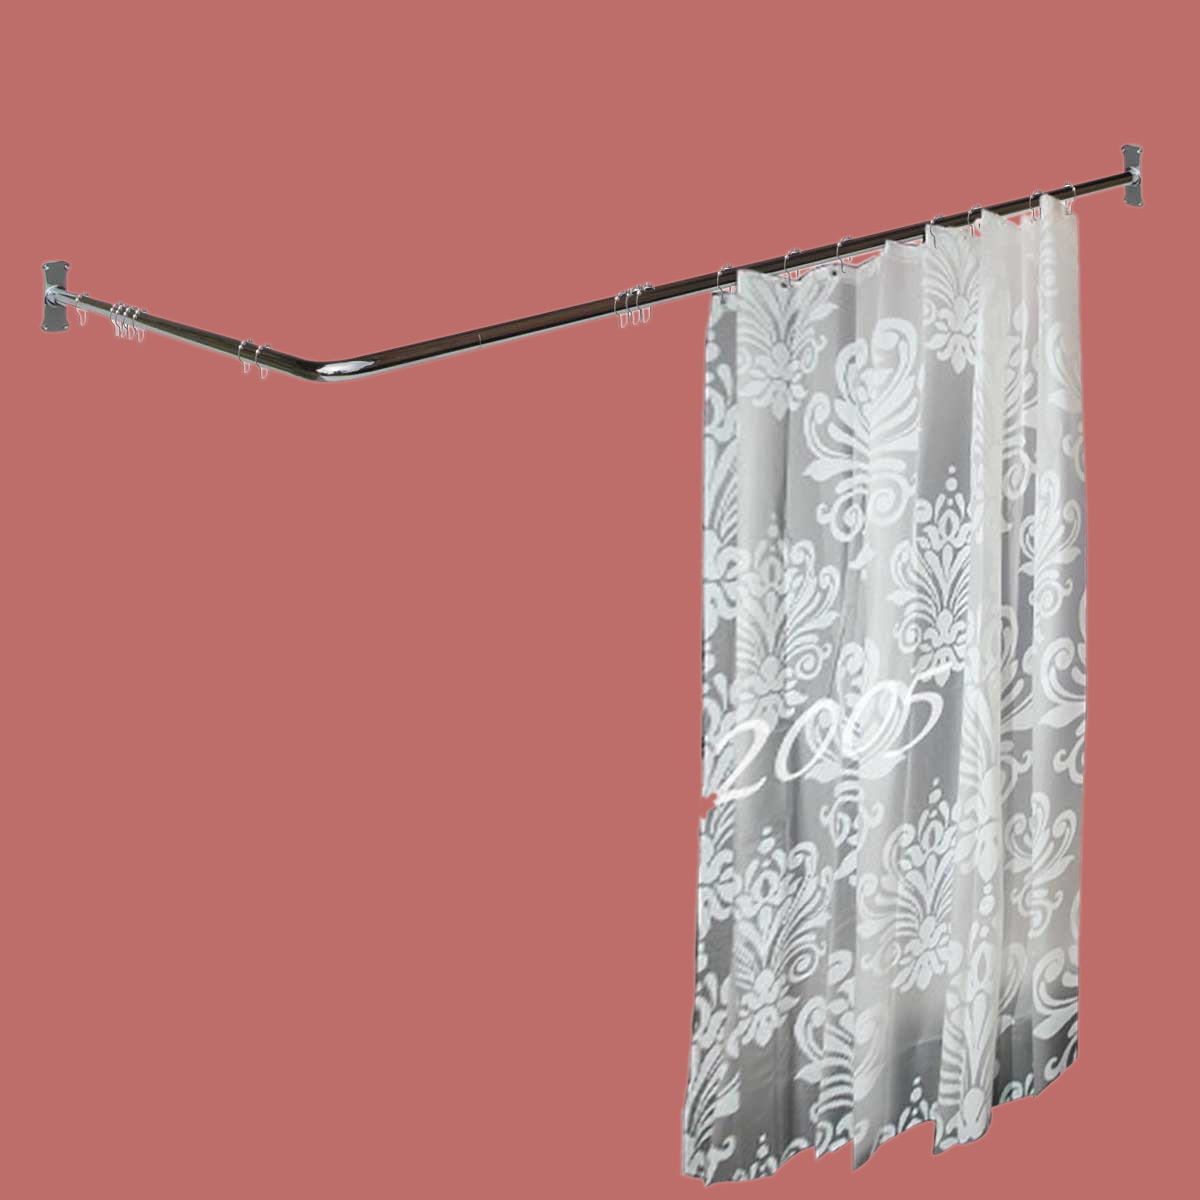 Two Sided Shower Curtain Rod Chrome Plated Brass 7 8 Dia